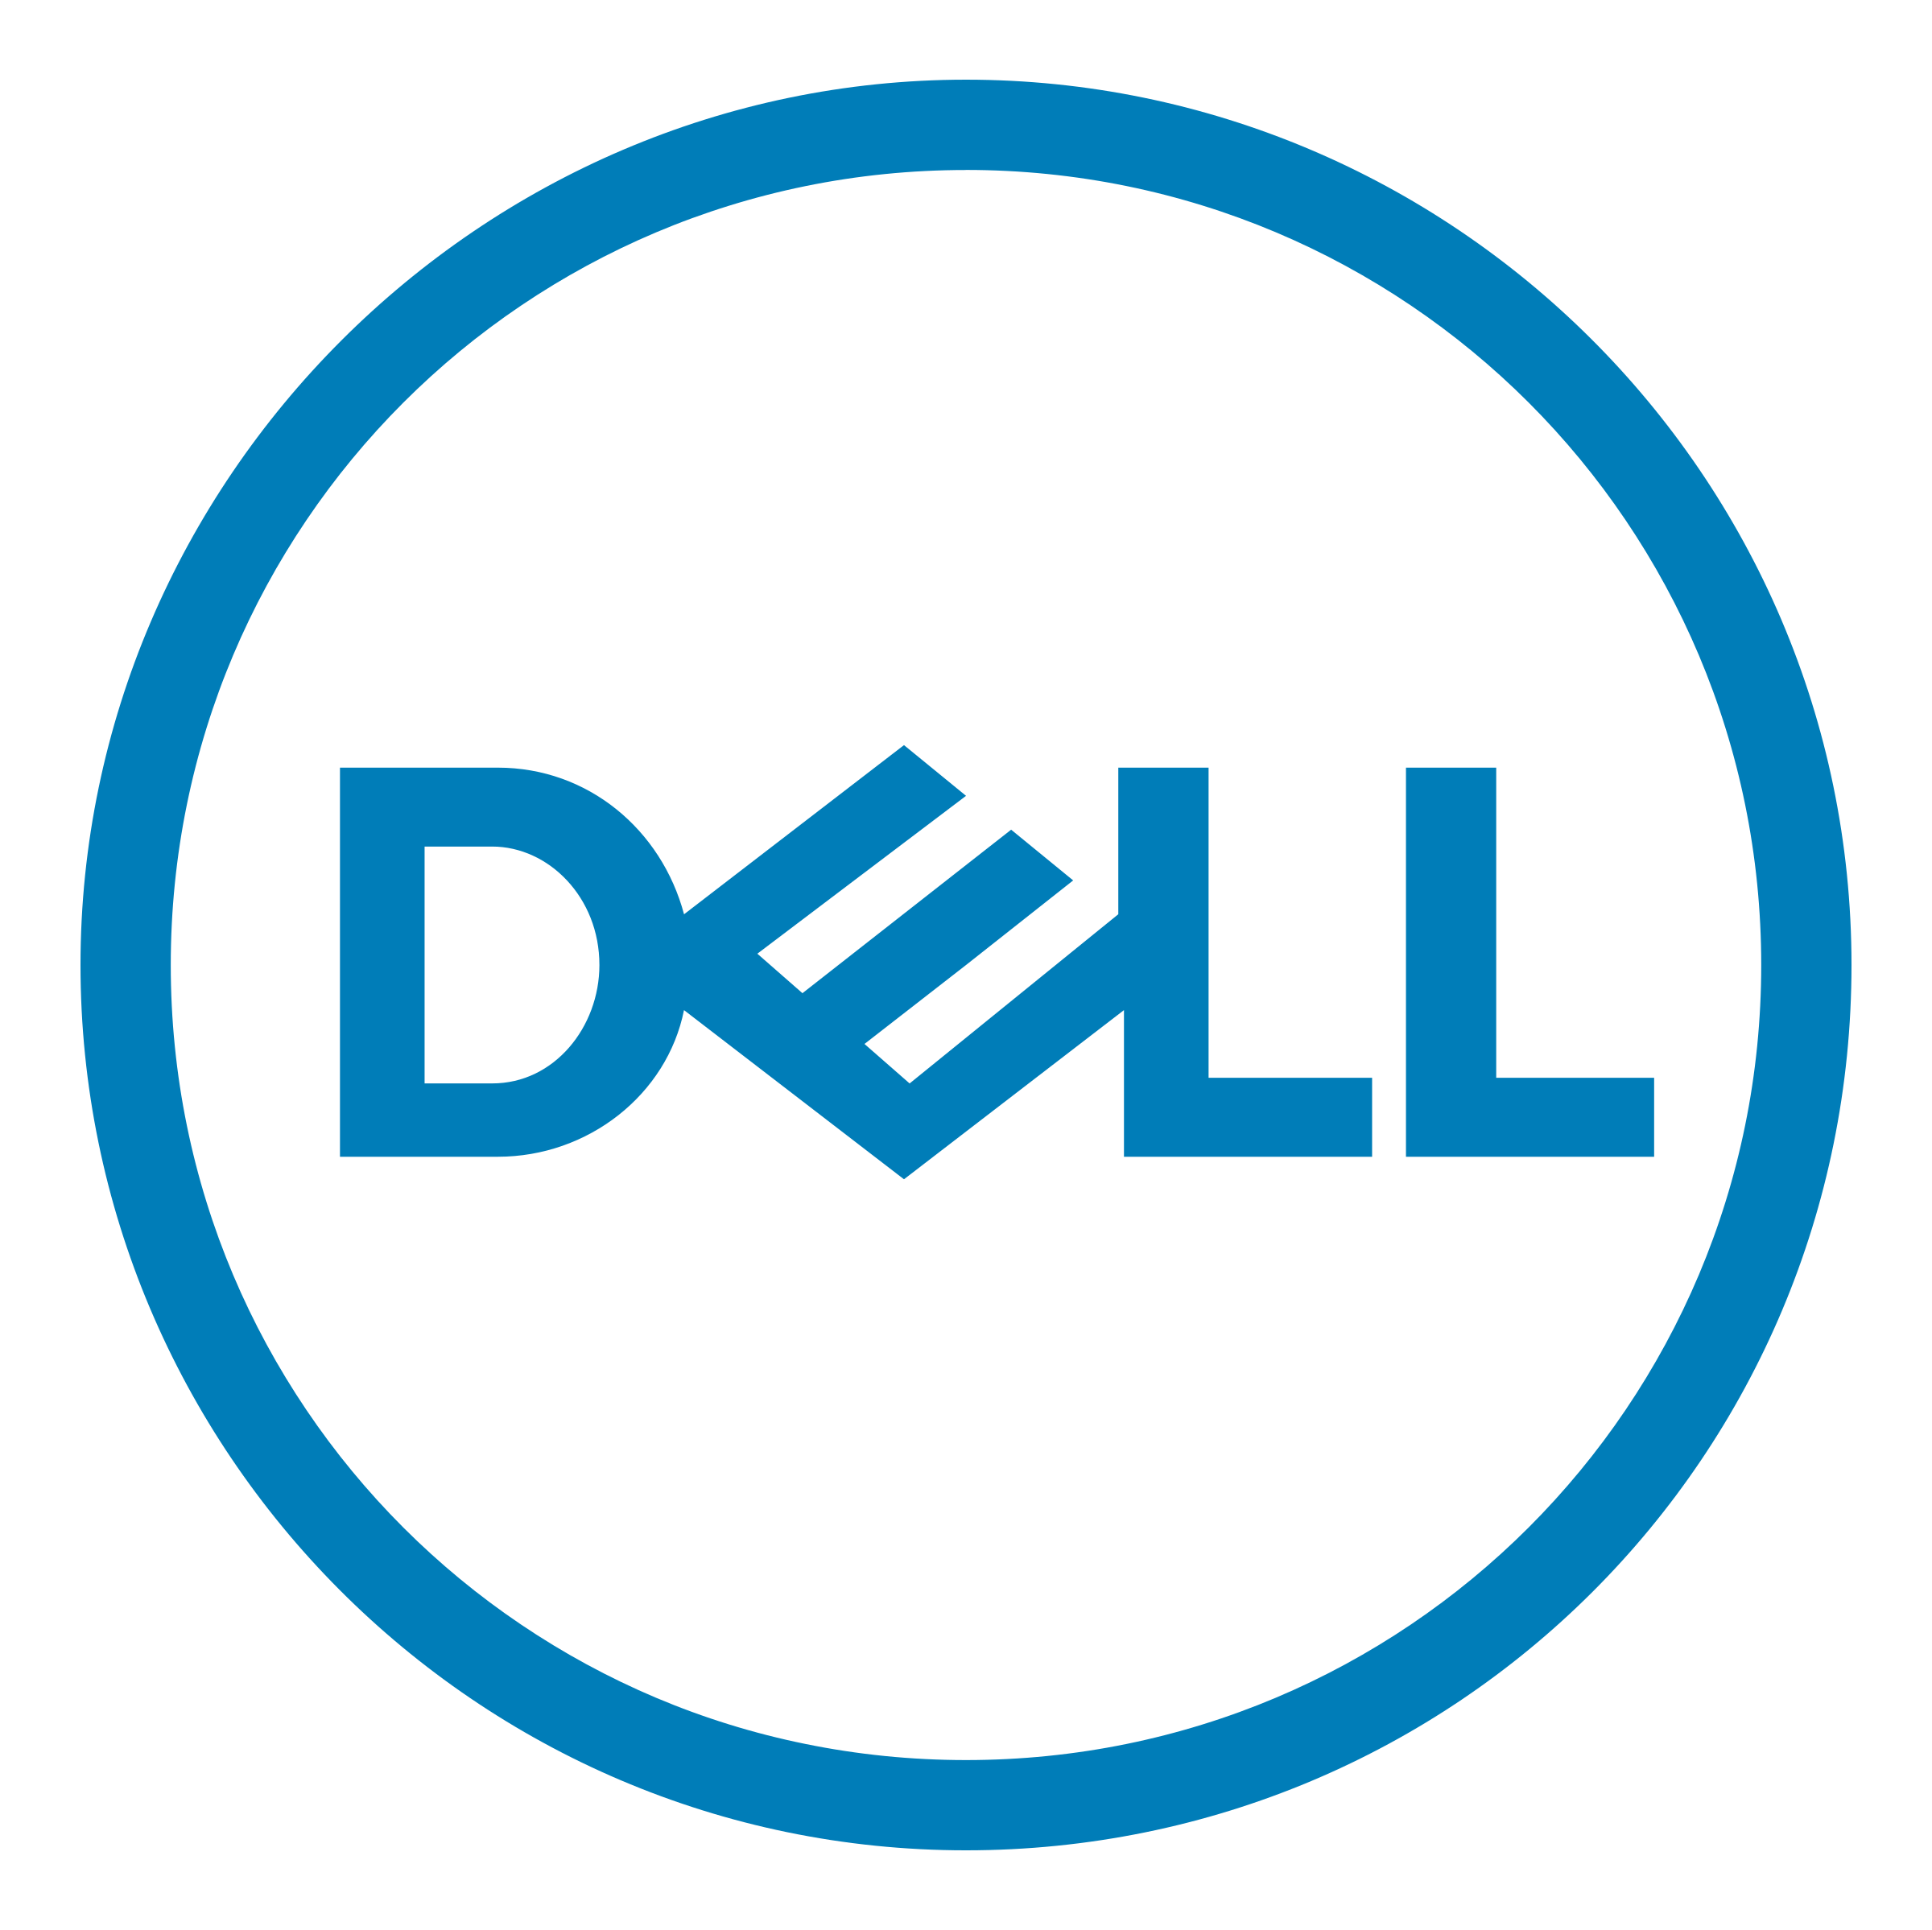 Dell logo png. Transparent svg vector freebie